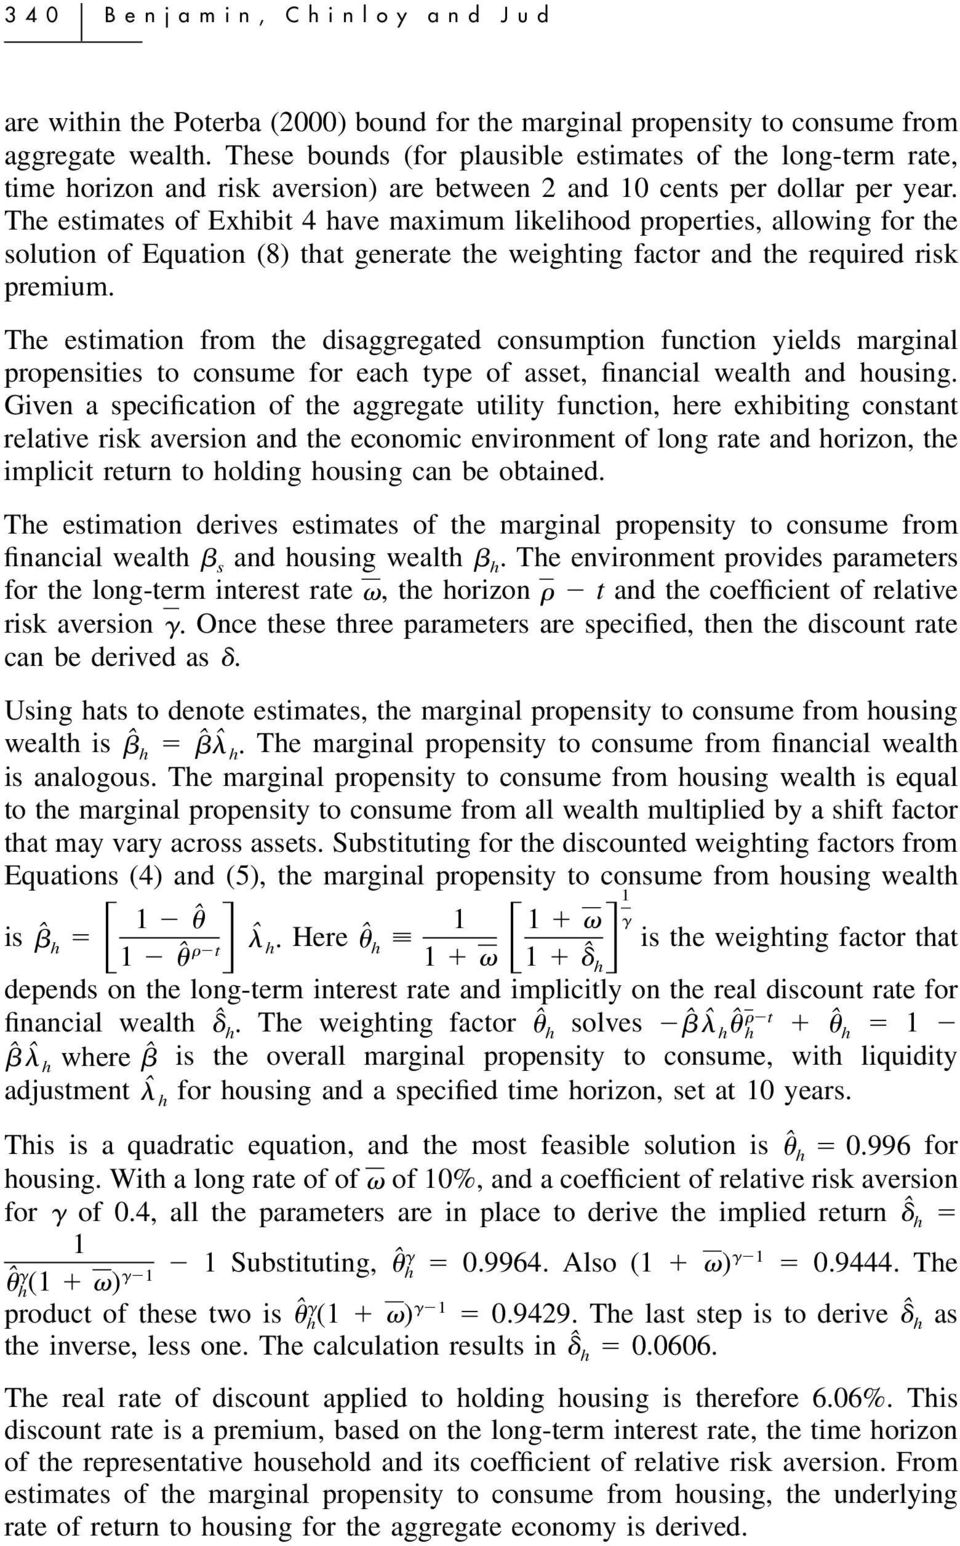 The estimates of Exhibit 4 have maximum likelihood properties, allowing for the solution of Equation (8) that generate the weighting factor and the required risk premium.